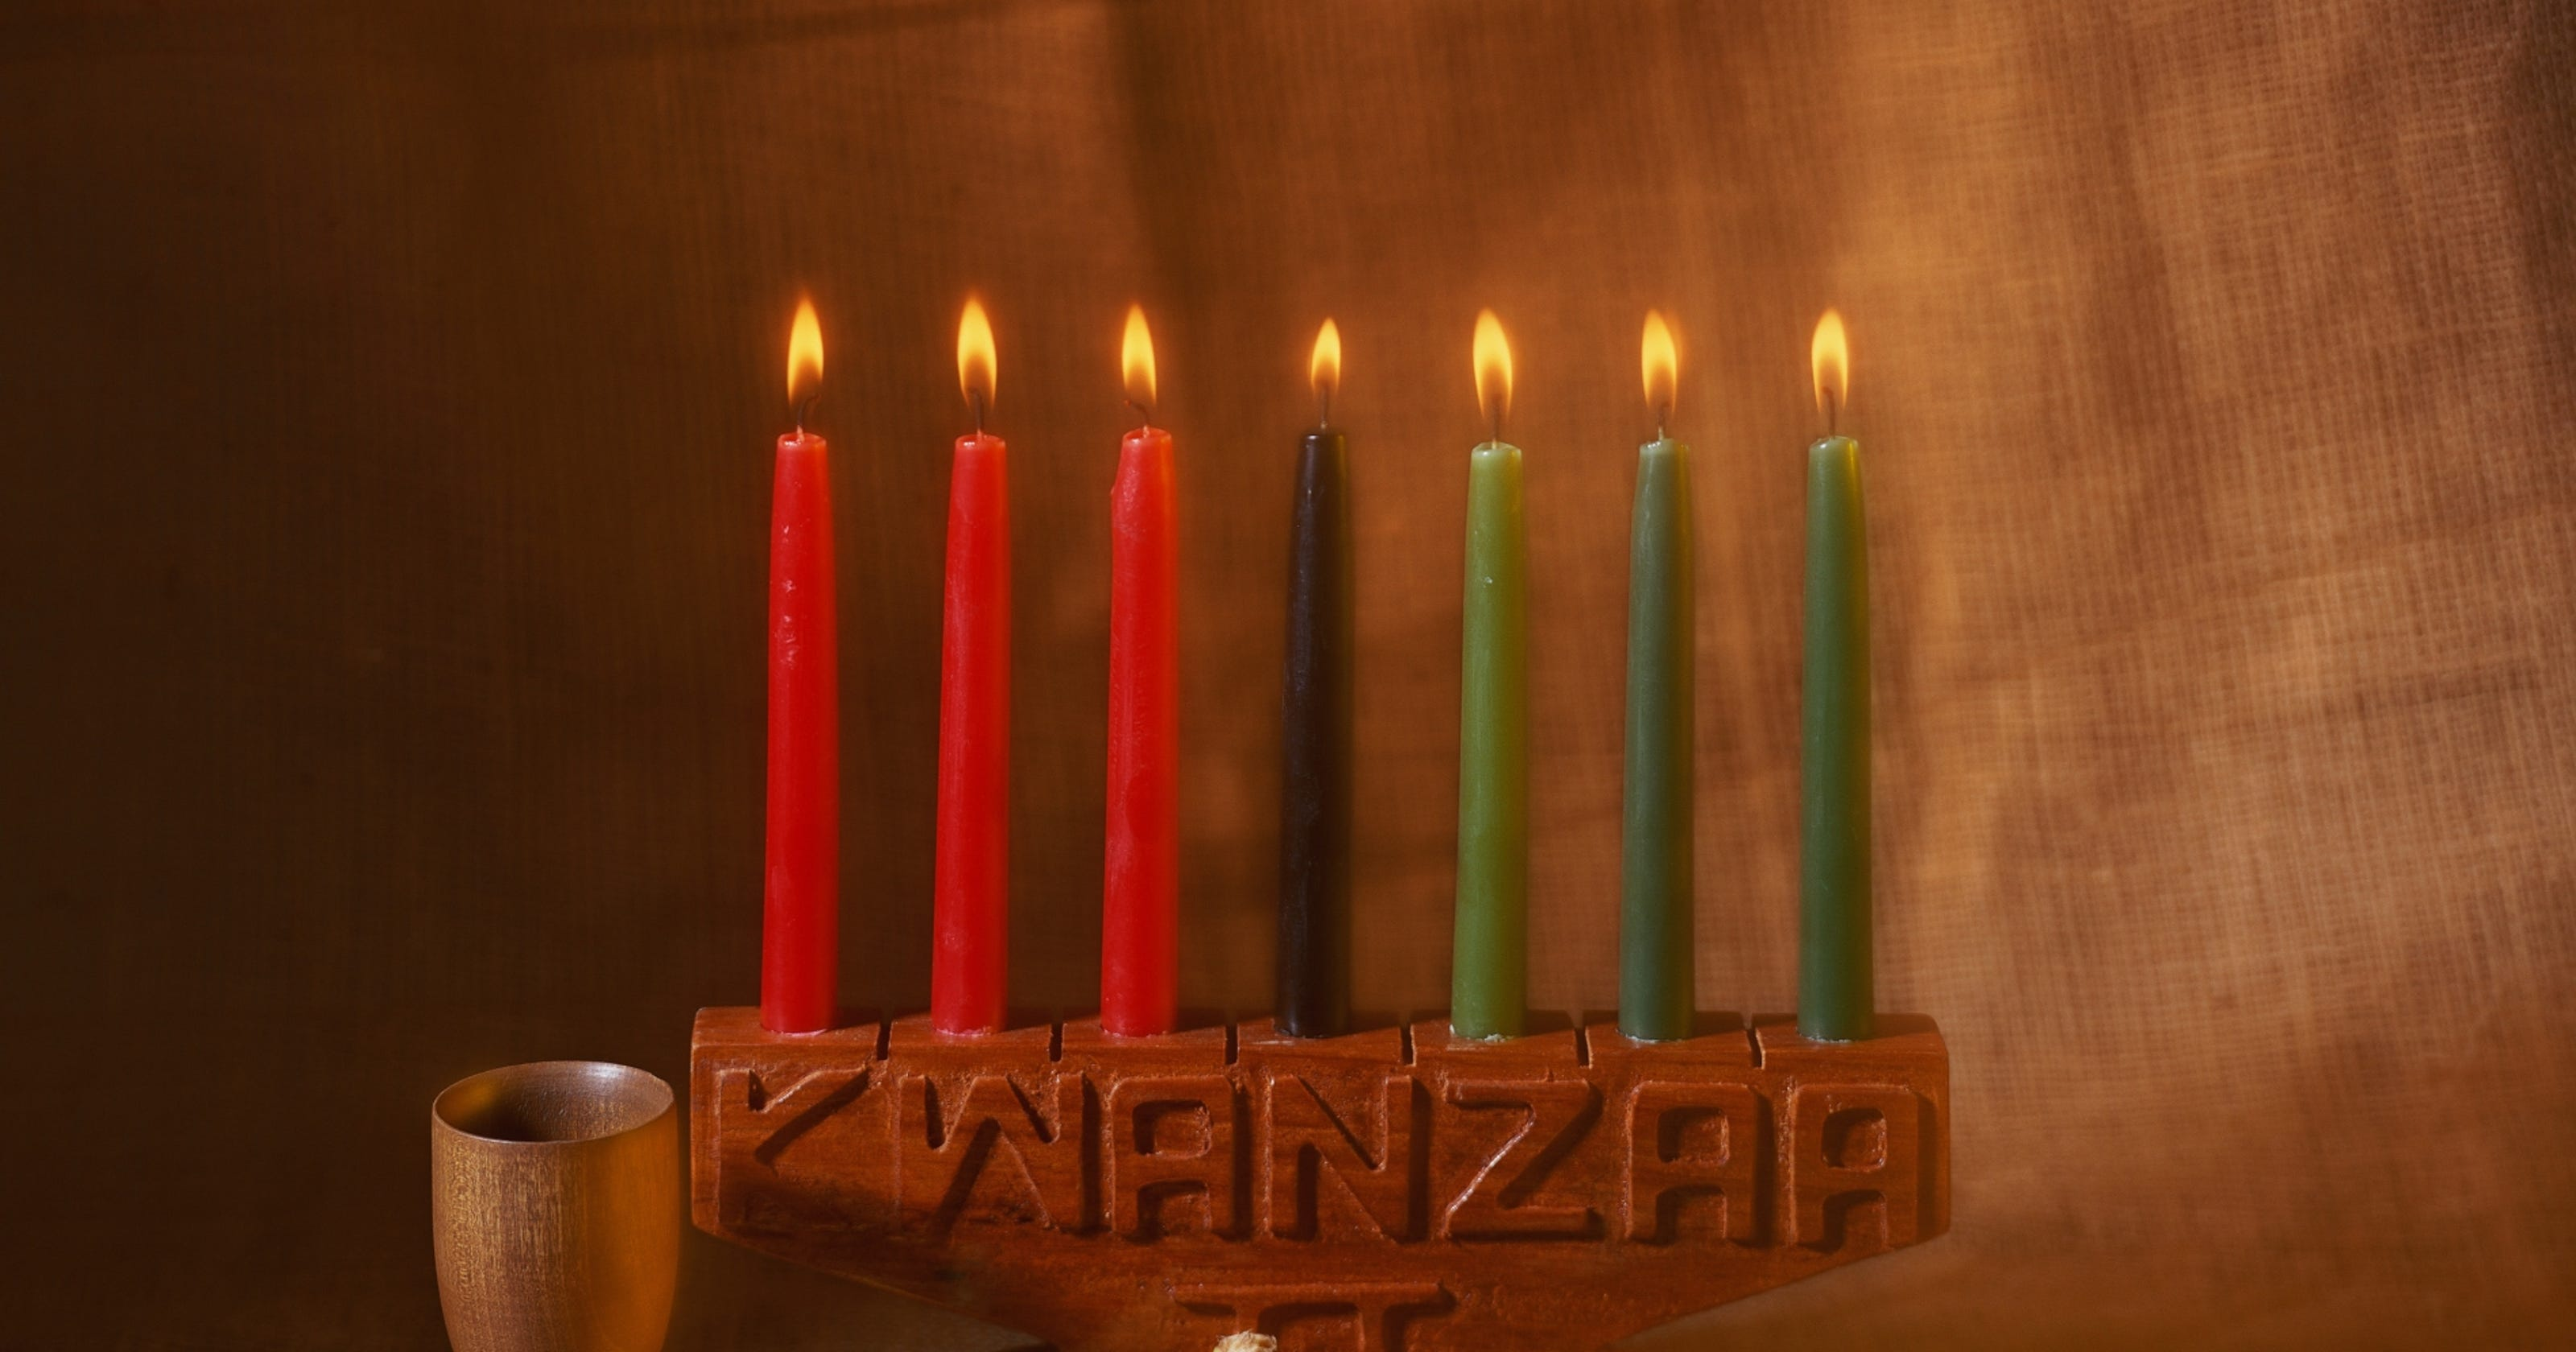 Celebrating Kwanzaa One Day At A Time